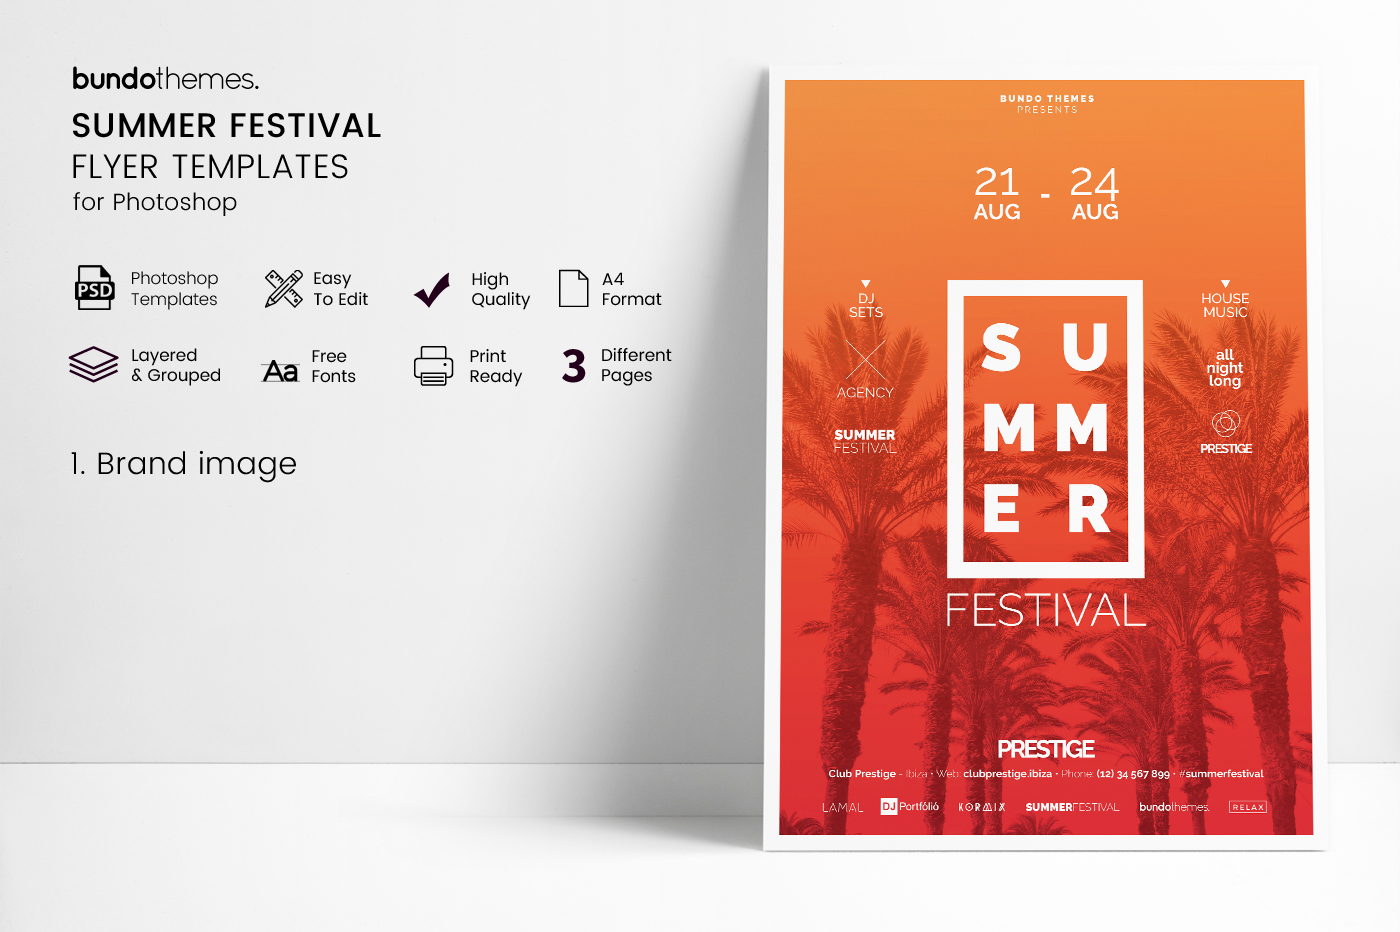 Summer Festival Flyer Templates example image 3